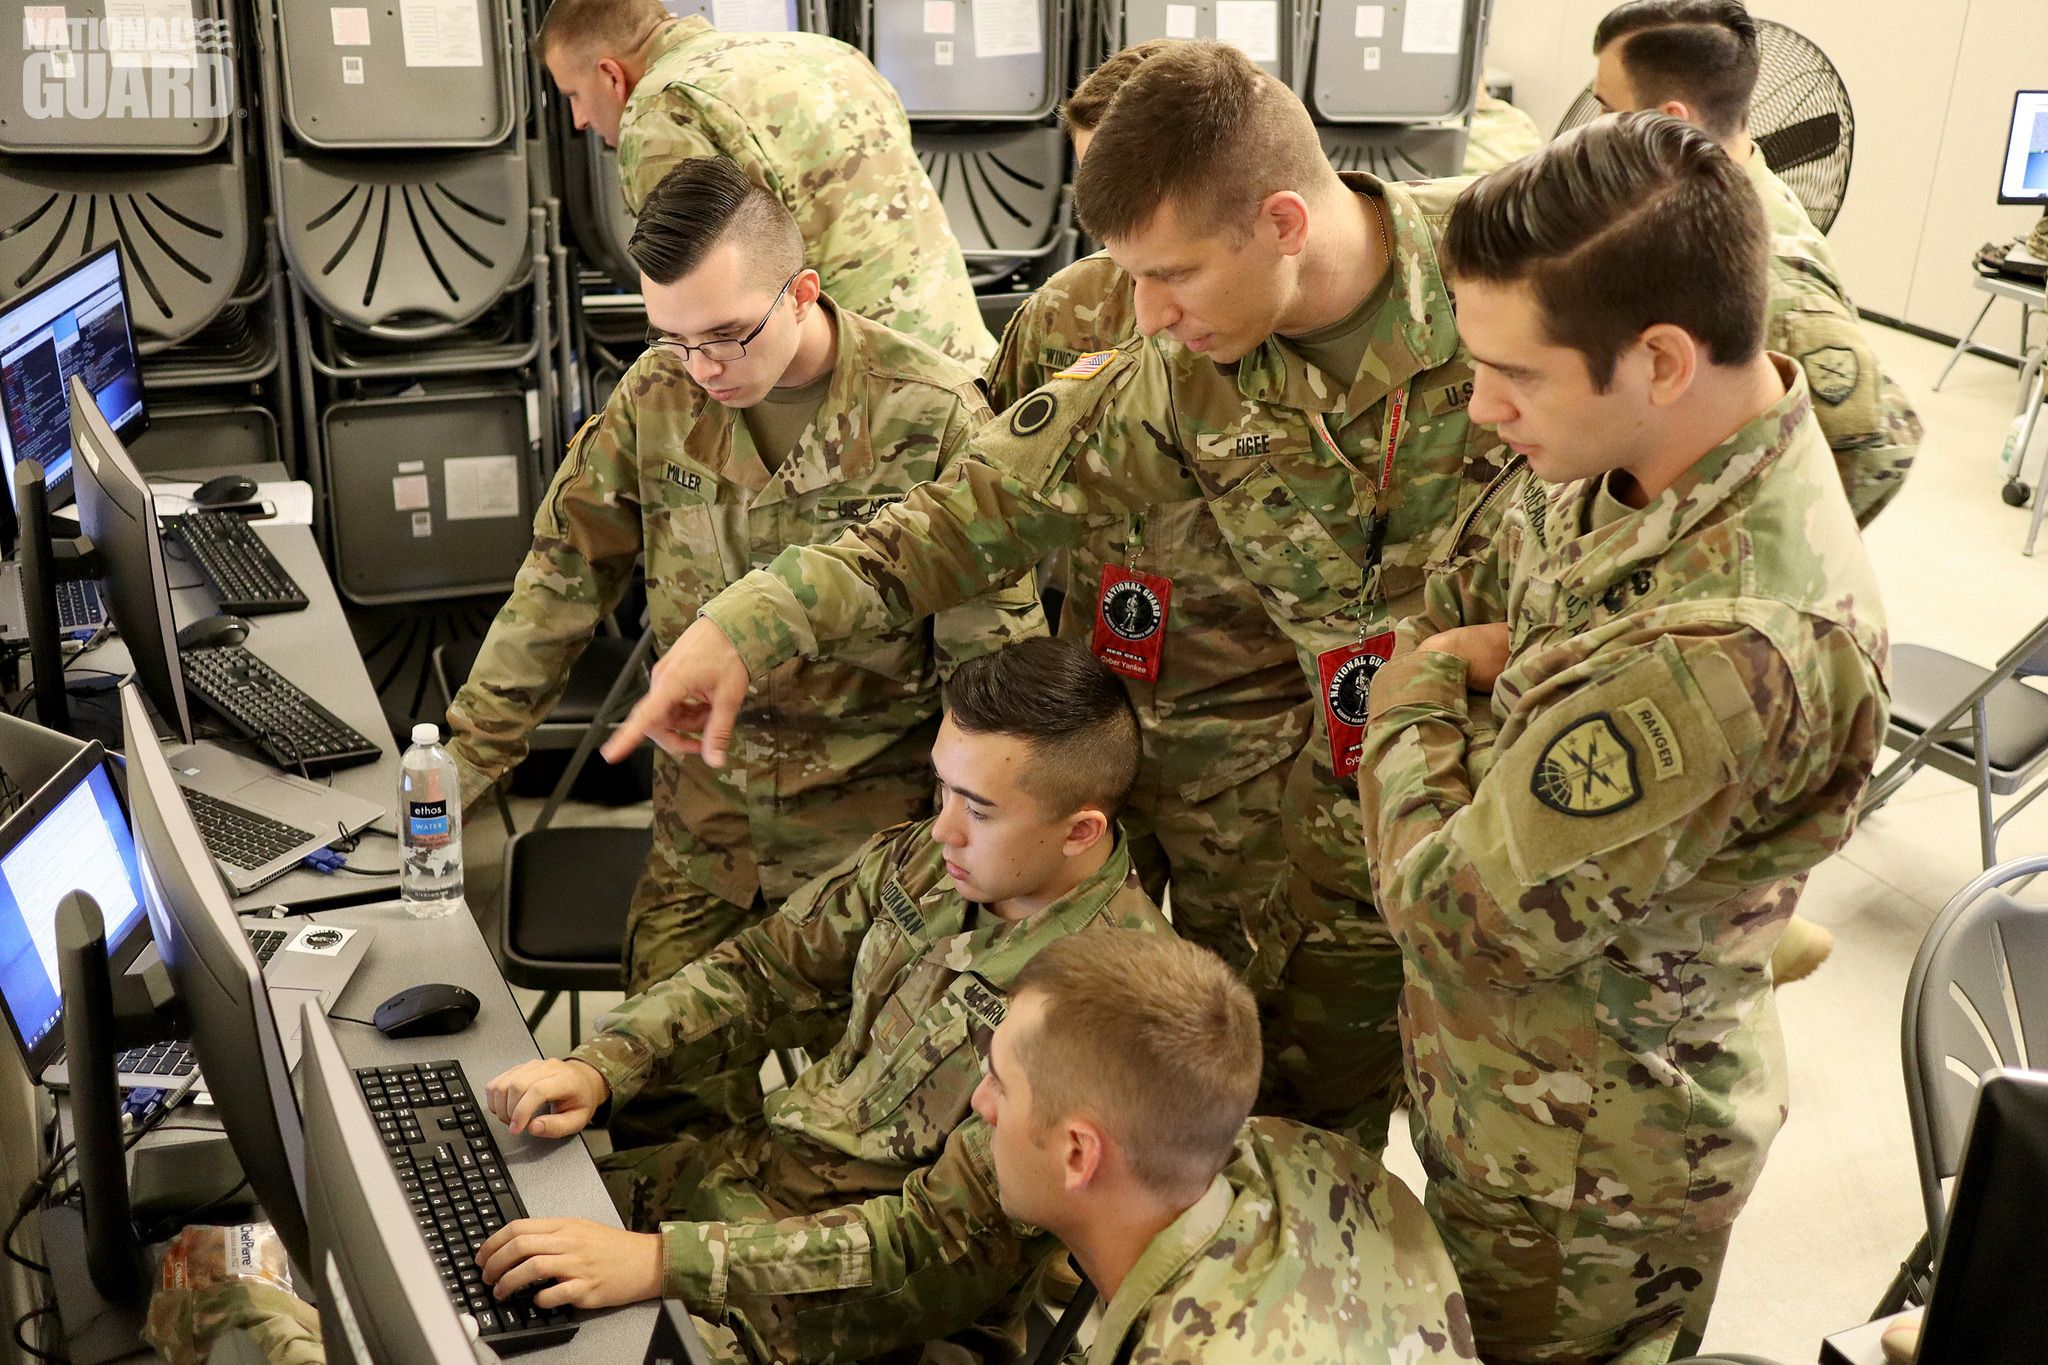 Warfare in the digital age has a new front line—cyberspace